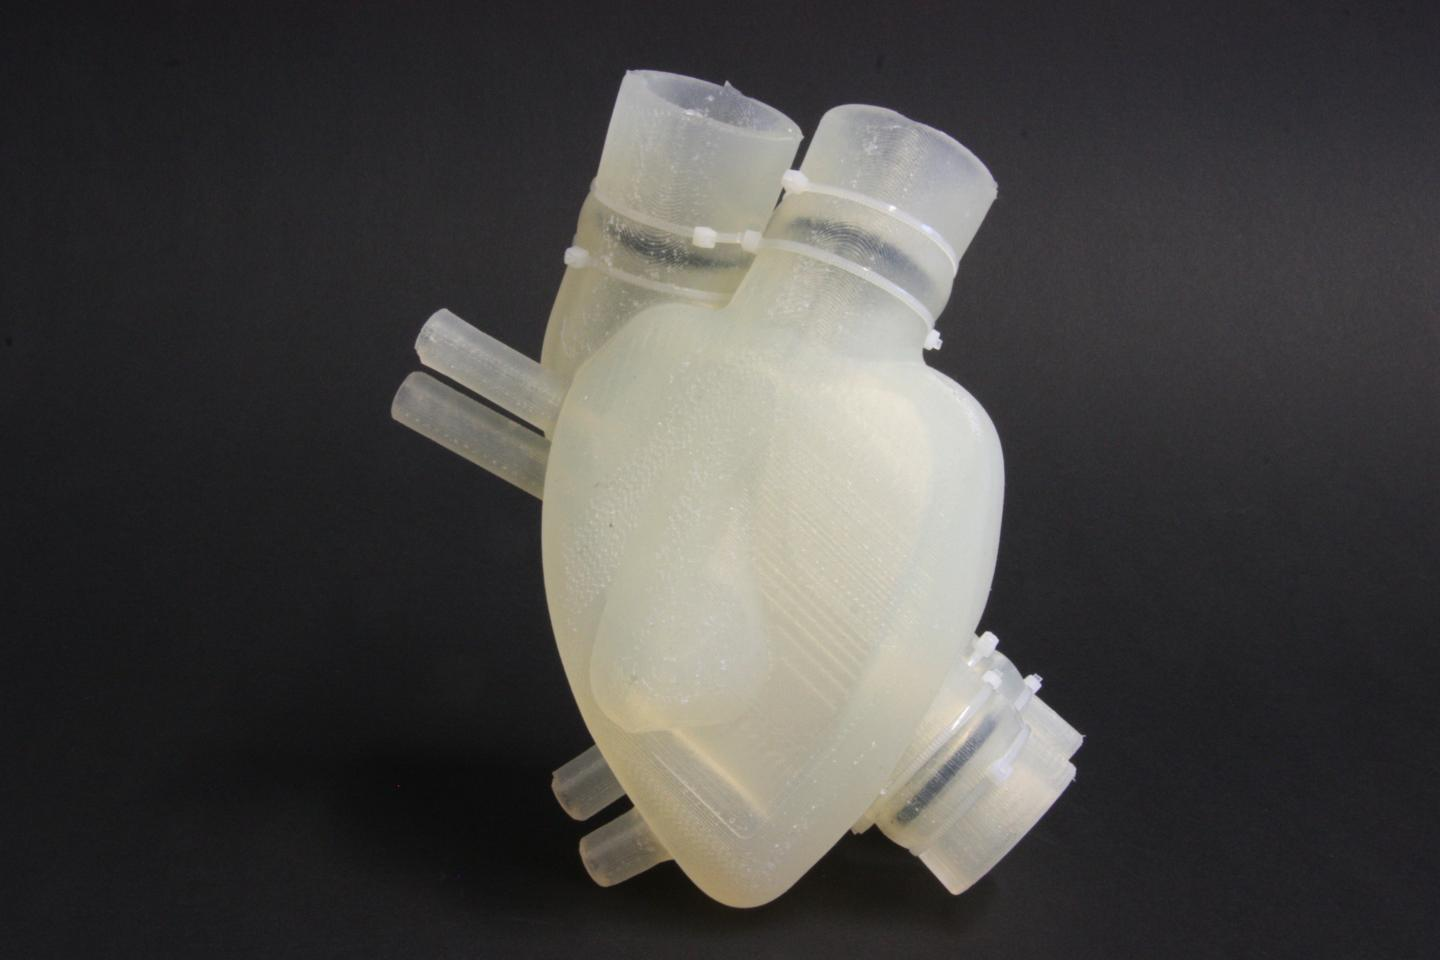 Soft artificial heart completes initial trials in Swiss